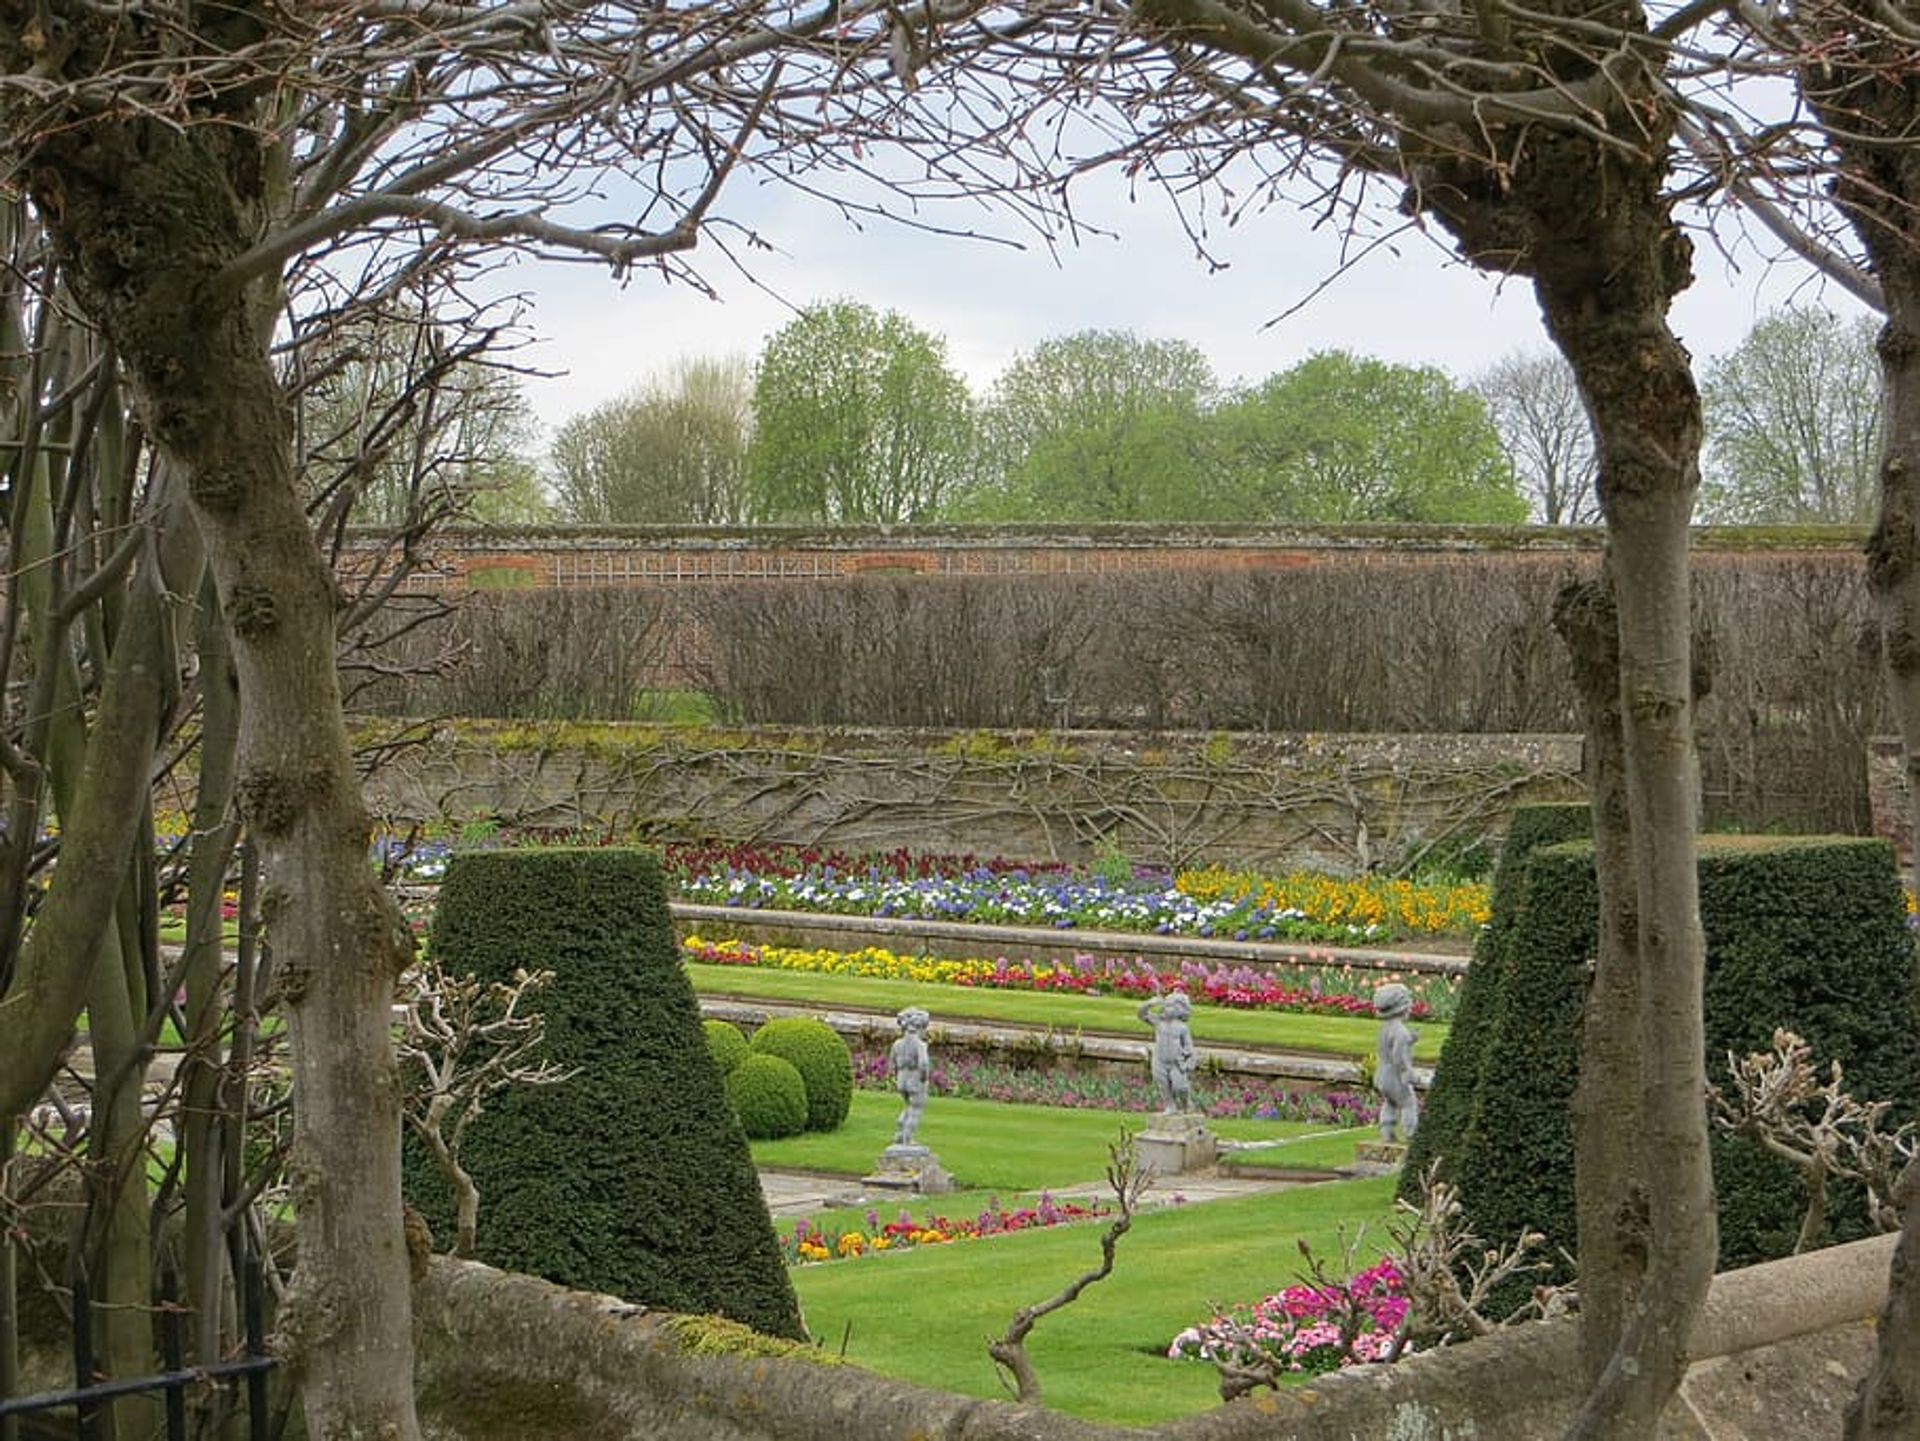 The reopening of the gardens at Hampton Court helped boost visitor numbers